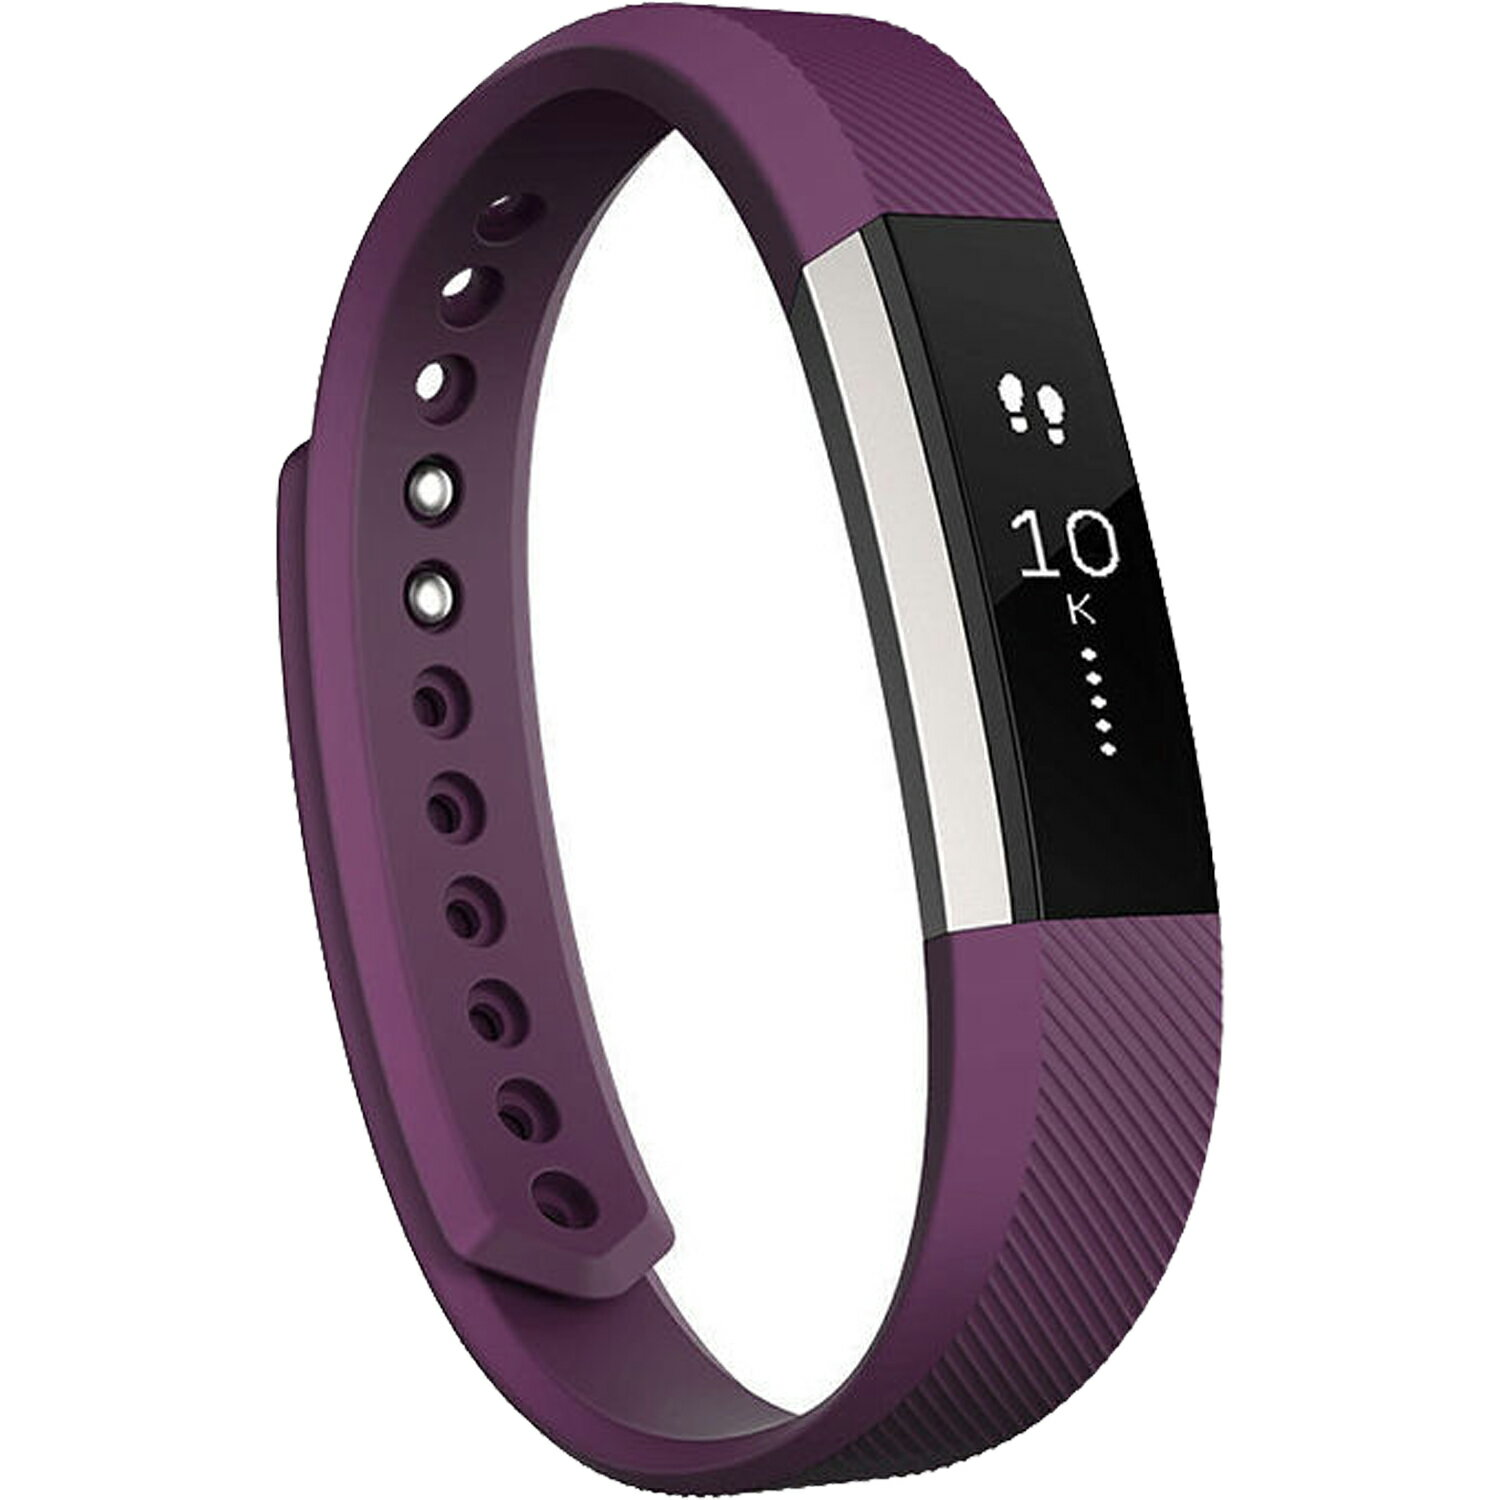 Fitbit Alta Wireless Activity Fitness Tracker and Sleep Monitor Wristband - Plum - Large 0